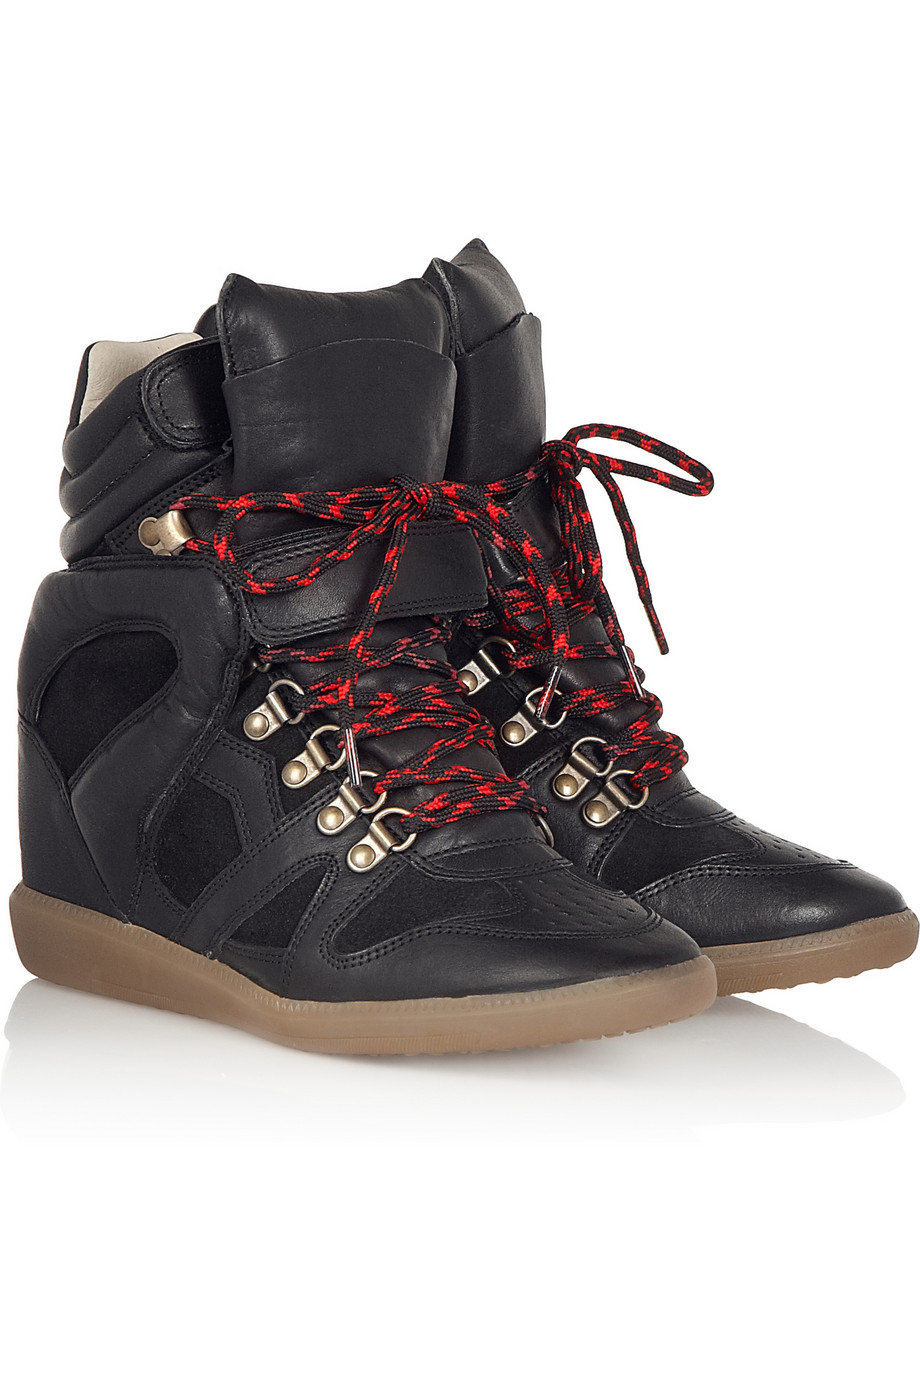 isabel marant toile buck leather and suede wedge sneakers. Black Bedroom Furniture Sets. Home Design Ideas